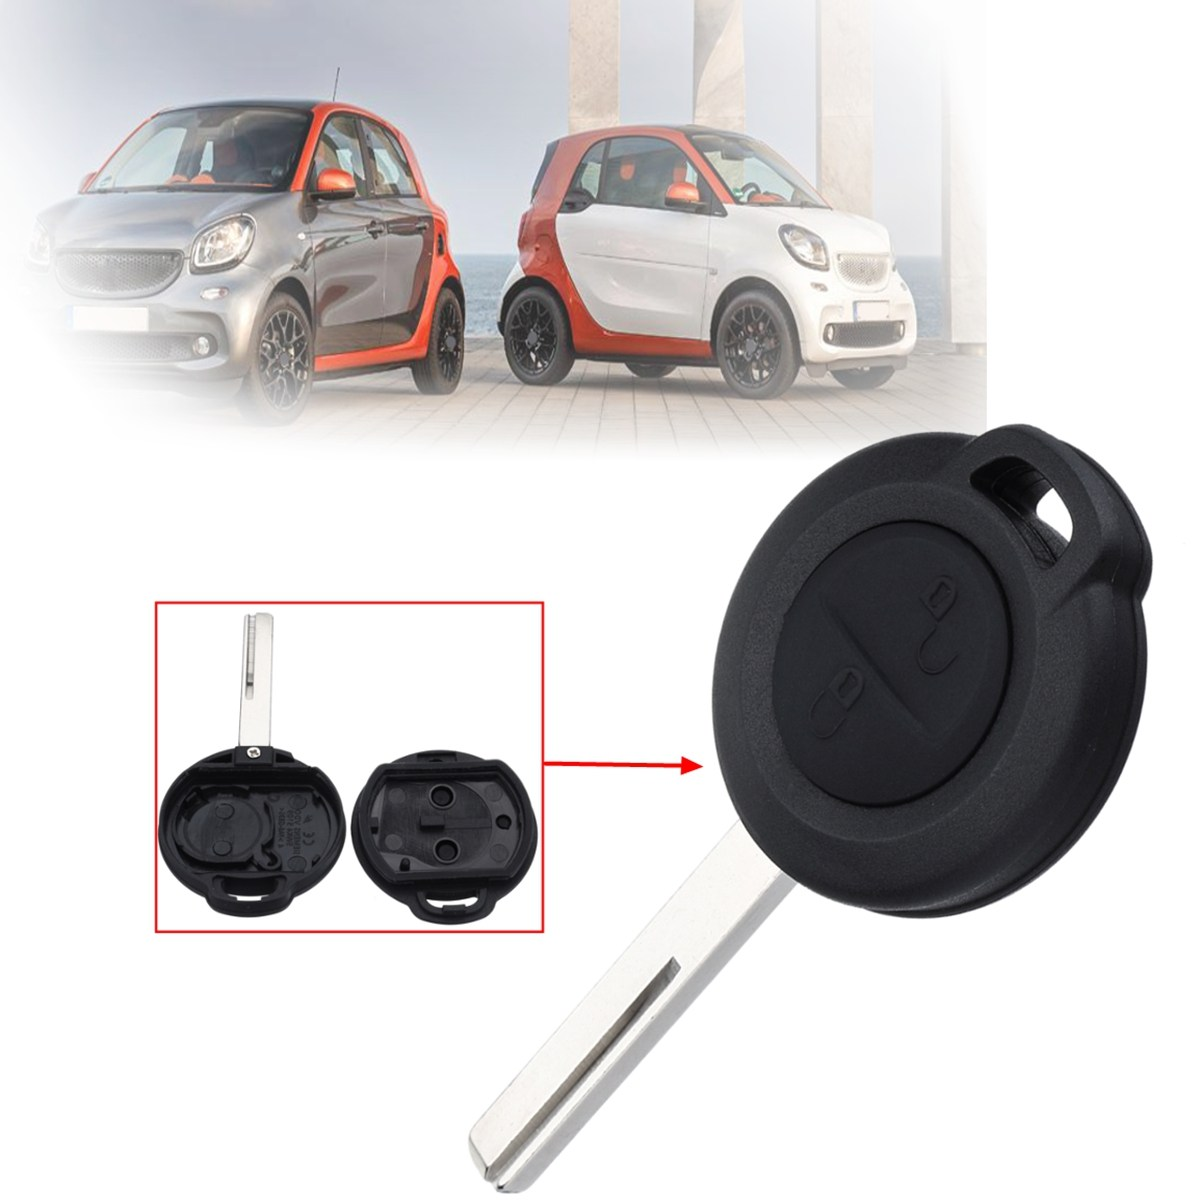 2 Buttons Open Lock Car Remote Key Fob Case Shell For Benz/Mercedes Smart Forfour